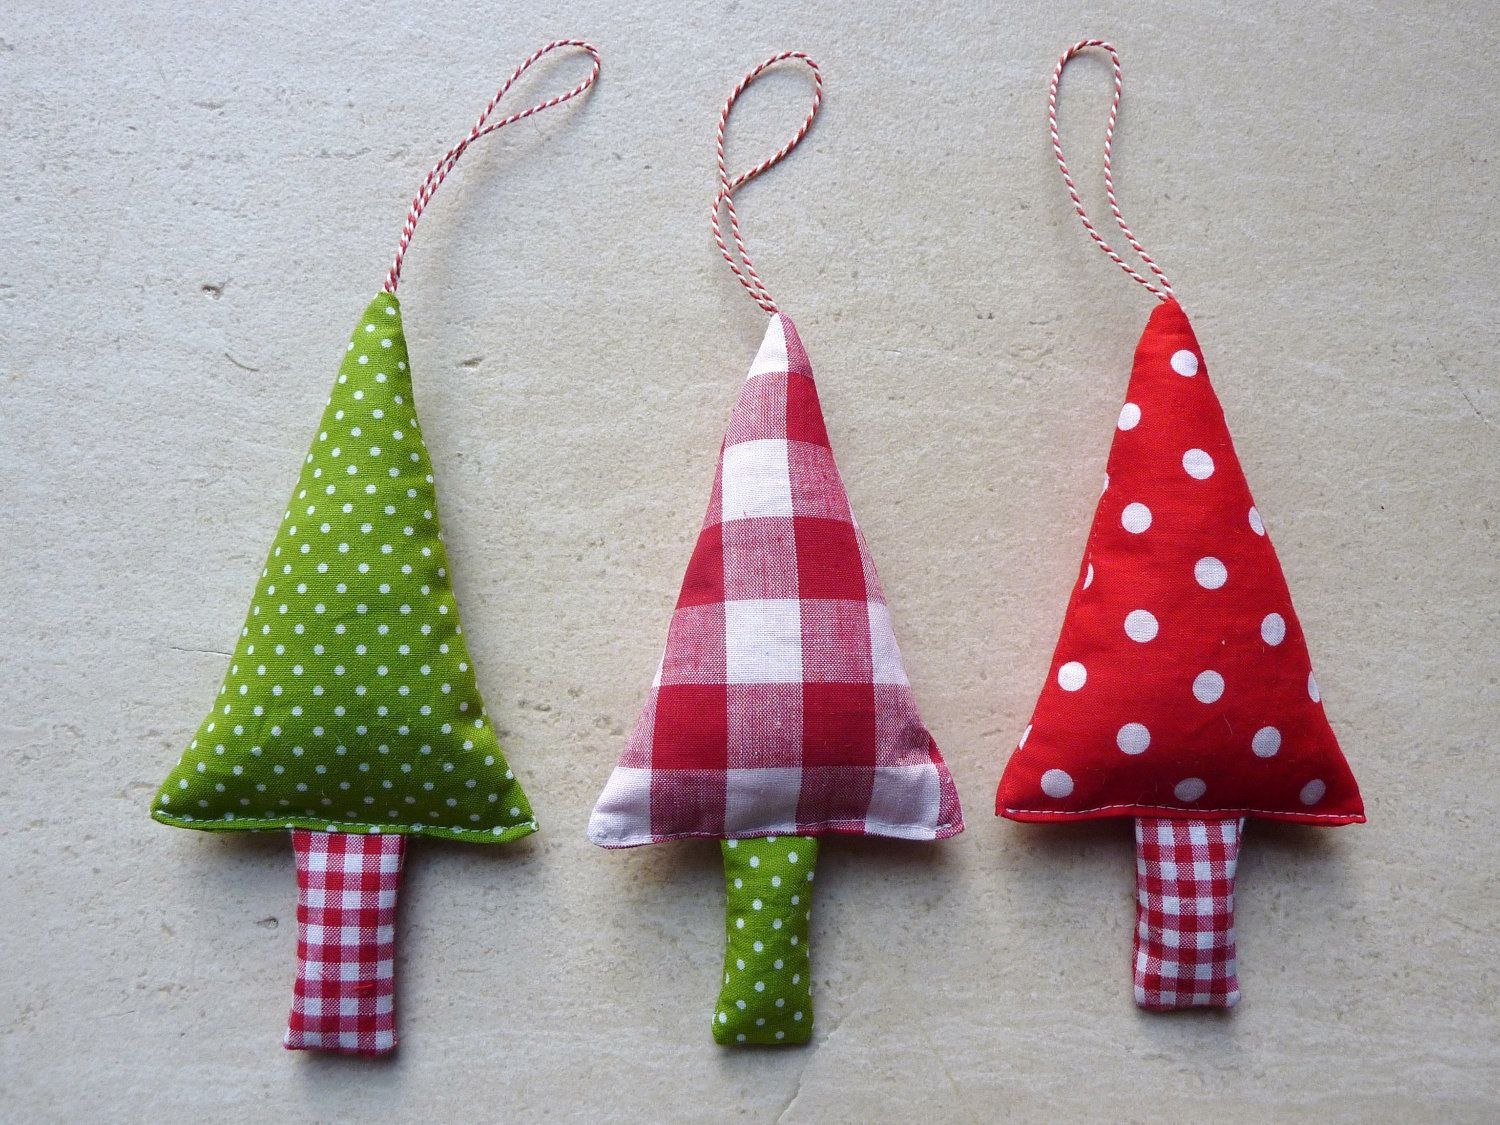 Fabric Christmas Ornaments Tree Decorations In Green Red And Etsy Fabric Christmas Ornaments Fabric Christmas Trees Christmas Ornaments